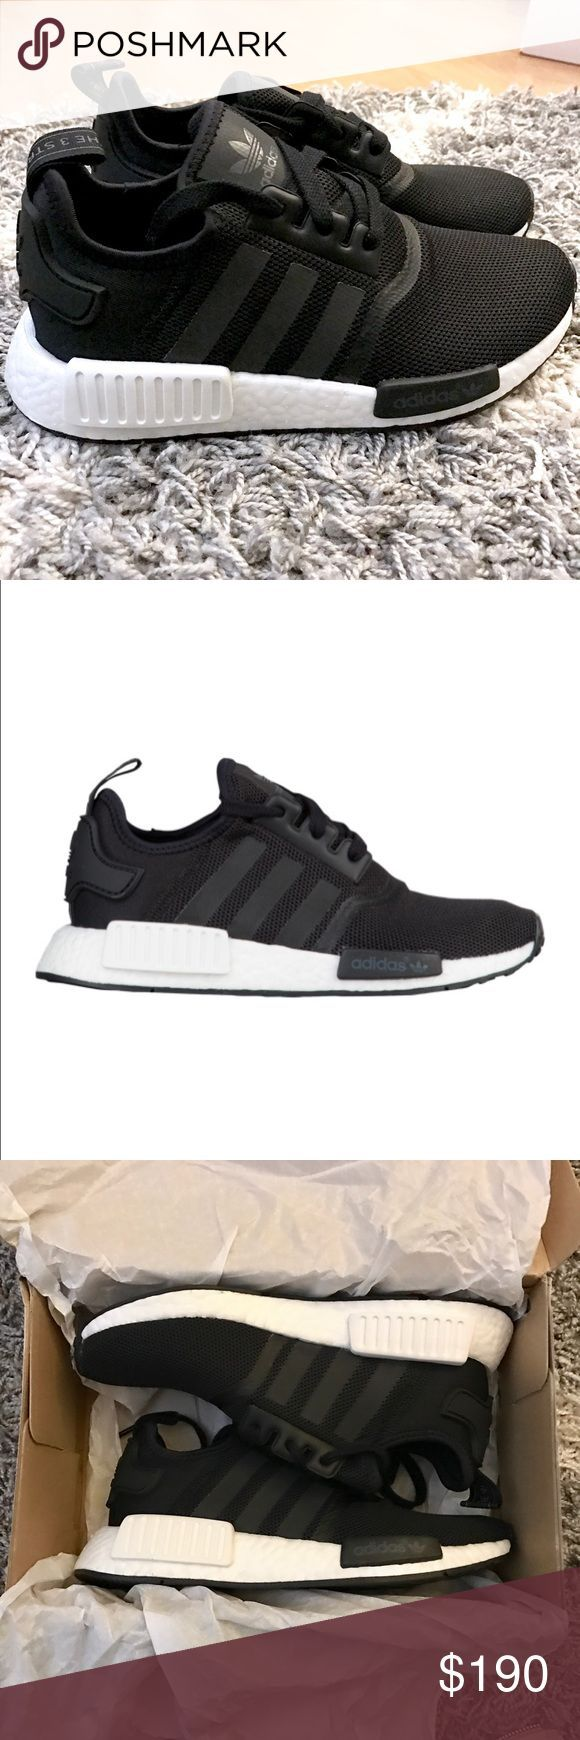 Cool Adidas Shoes **SOLD** Adidas Originals NMD Runner I am selling another pair of NMD in size 5.... Check more at http://24shopping.ga/fashion/adidas-shoes-sold-adidas-originals-nmd-runner-i-am-selling-another-pair-of-nmd-in-size-5/